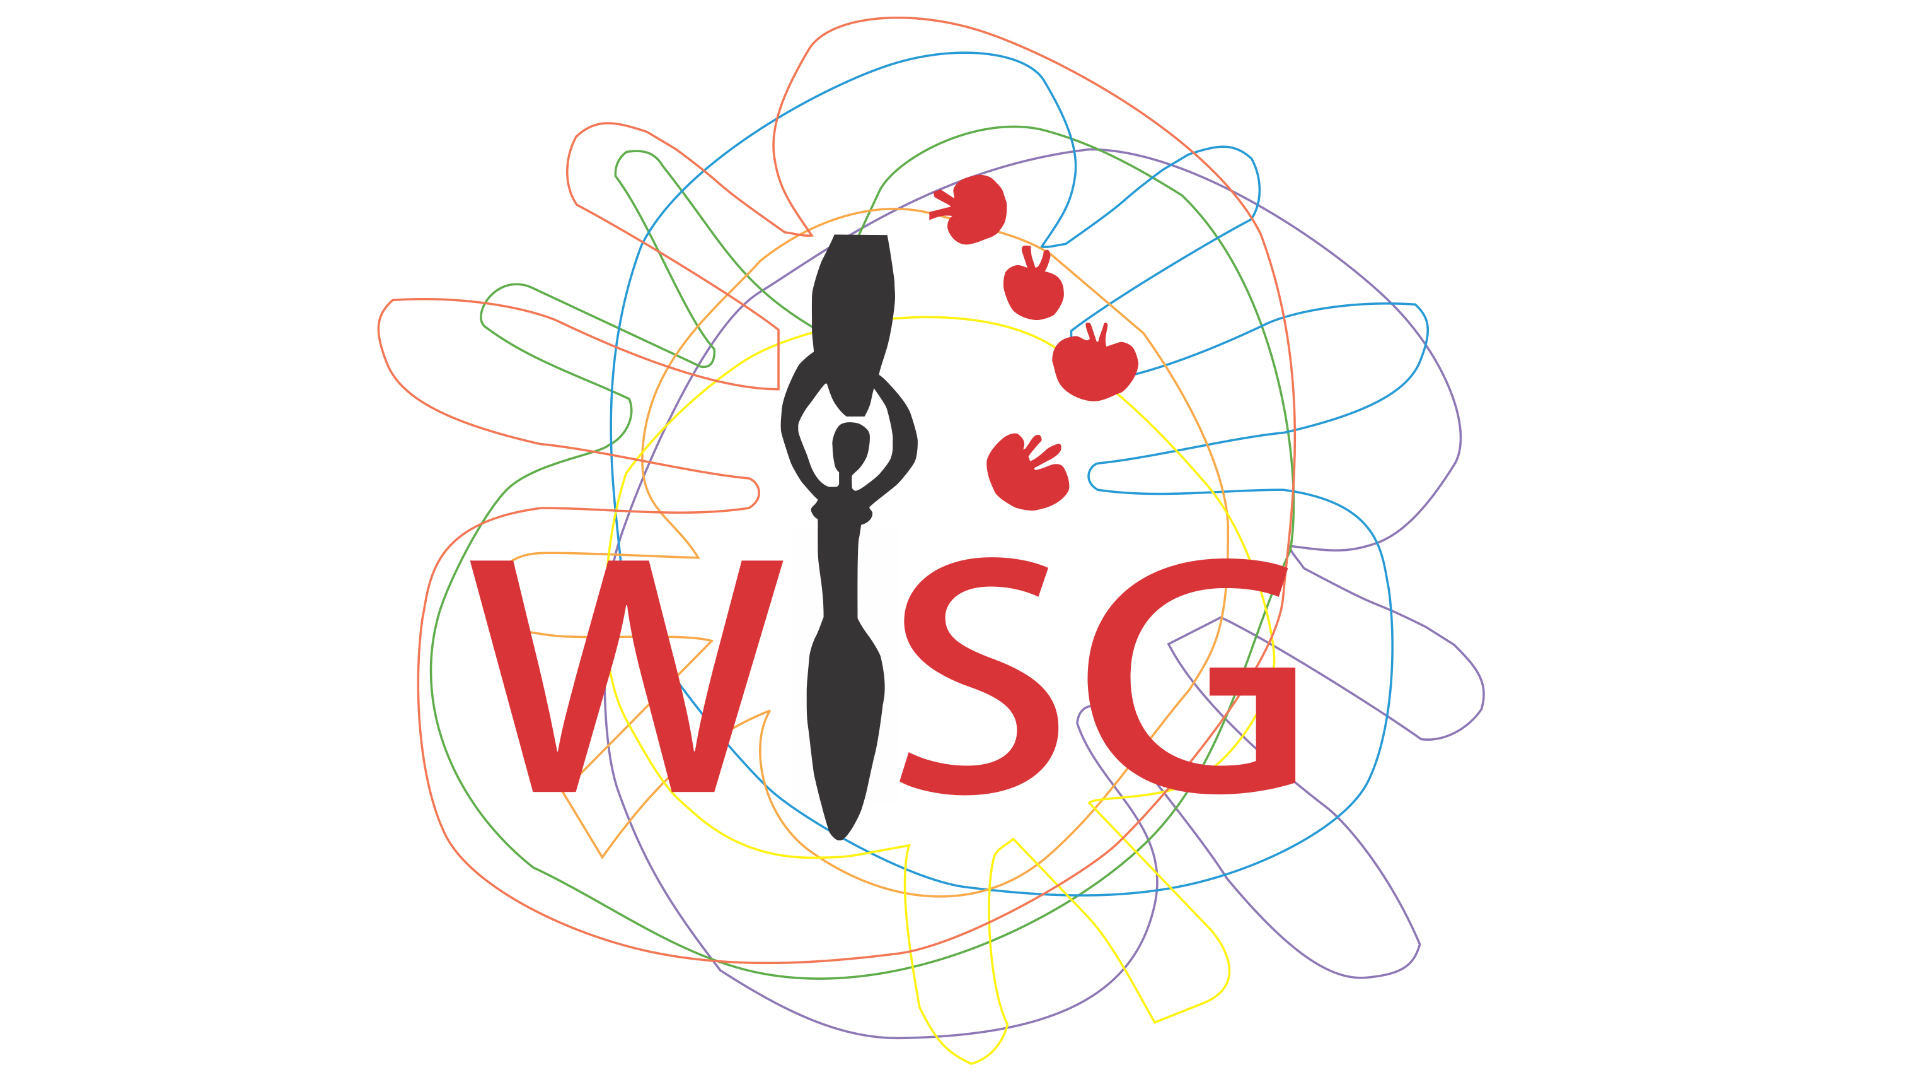 WISG addresses state agencies in regard to the situation on spread of the coronavirus